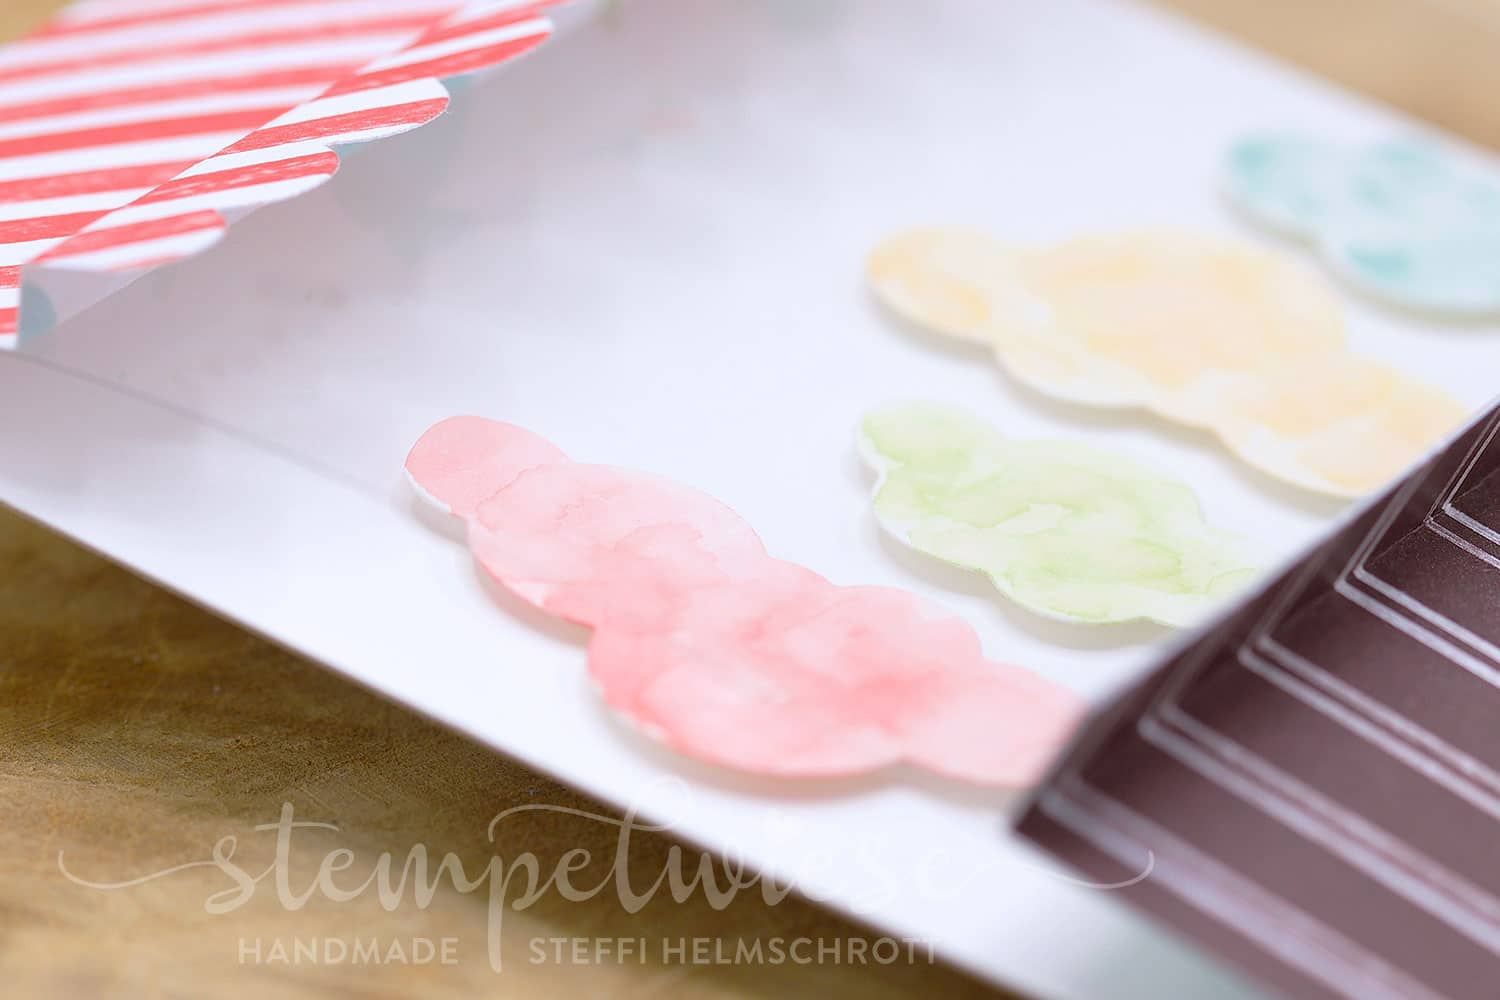 Grusskarte mit Zuckerwatte - Cotton Candy Shop - Stampin' Up! - Stempelwiese